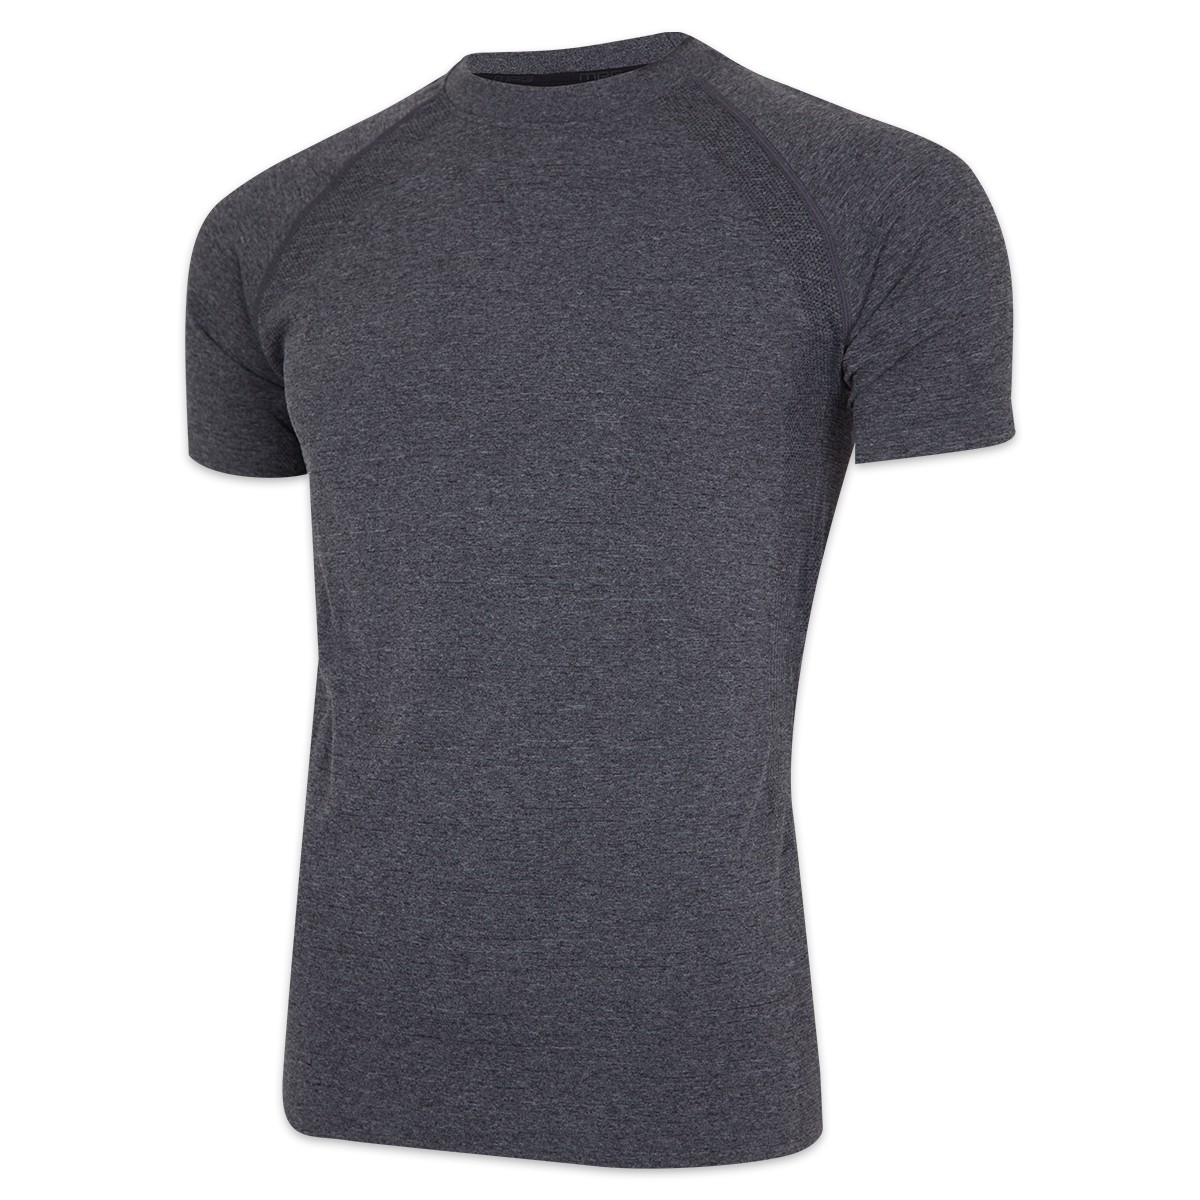 MPG Men's Uplift Short Sleeve